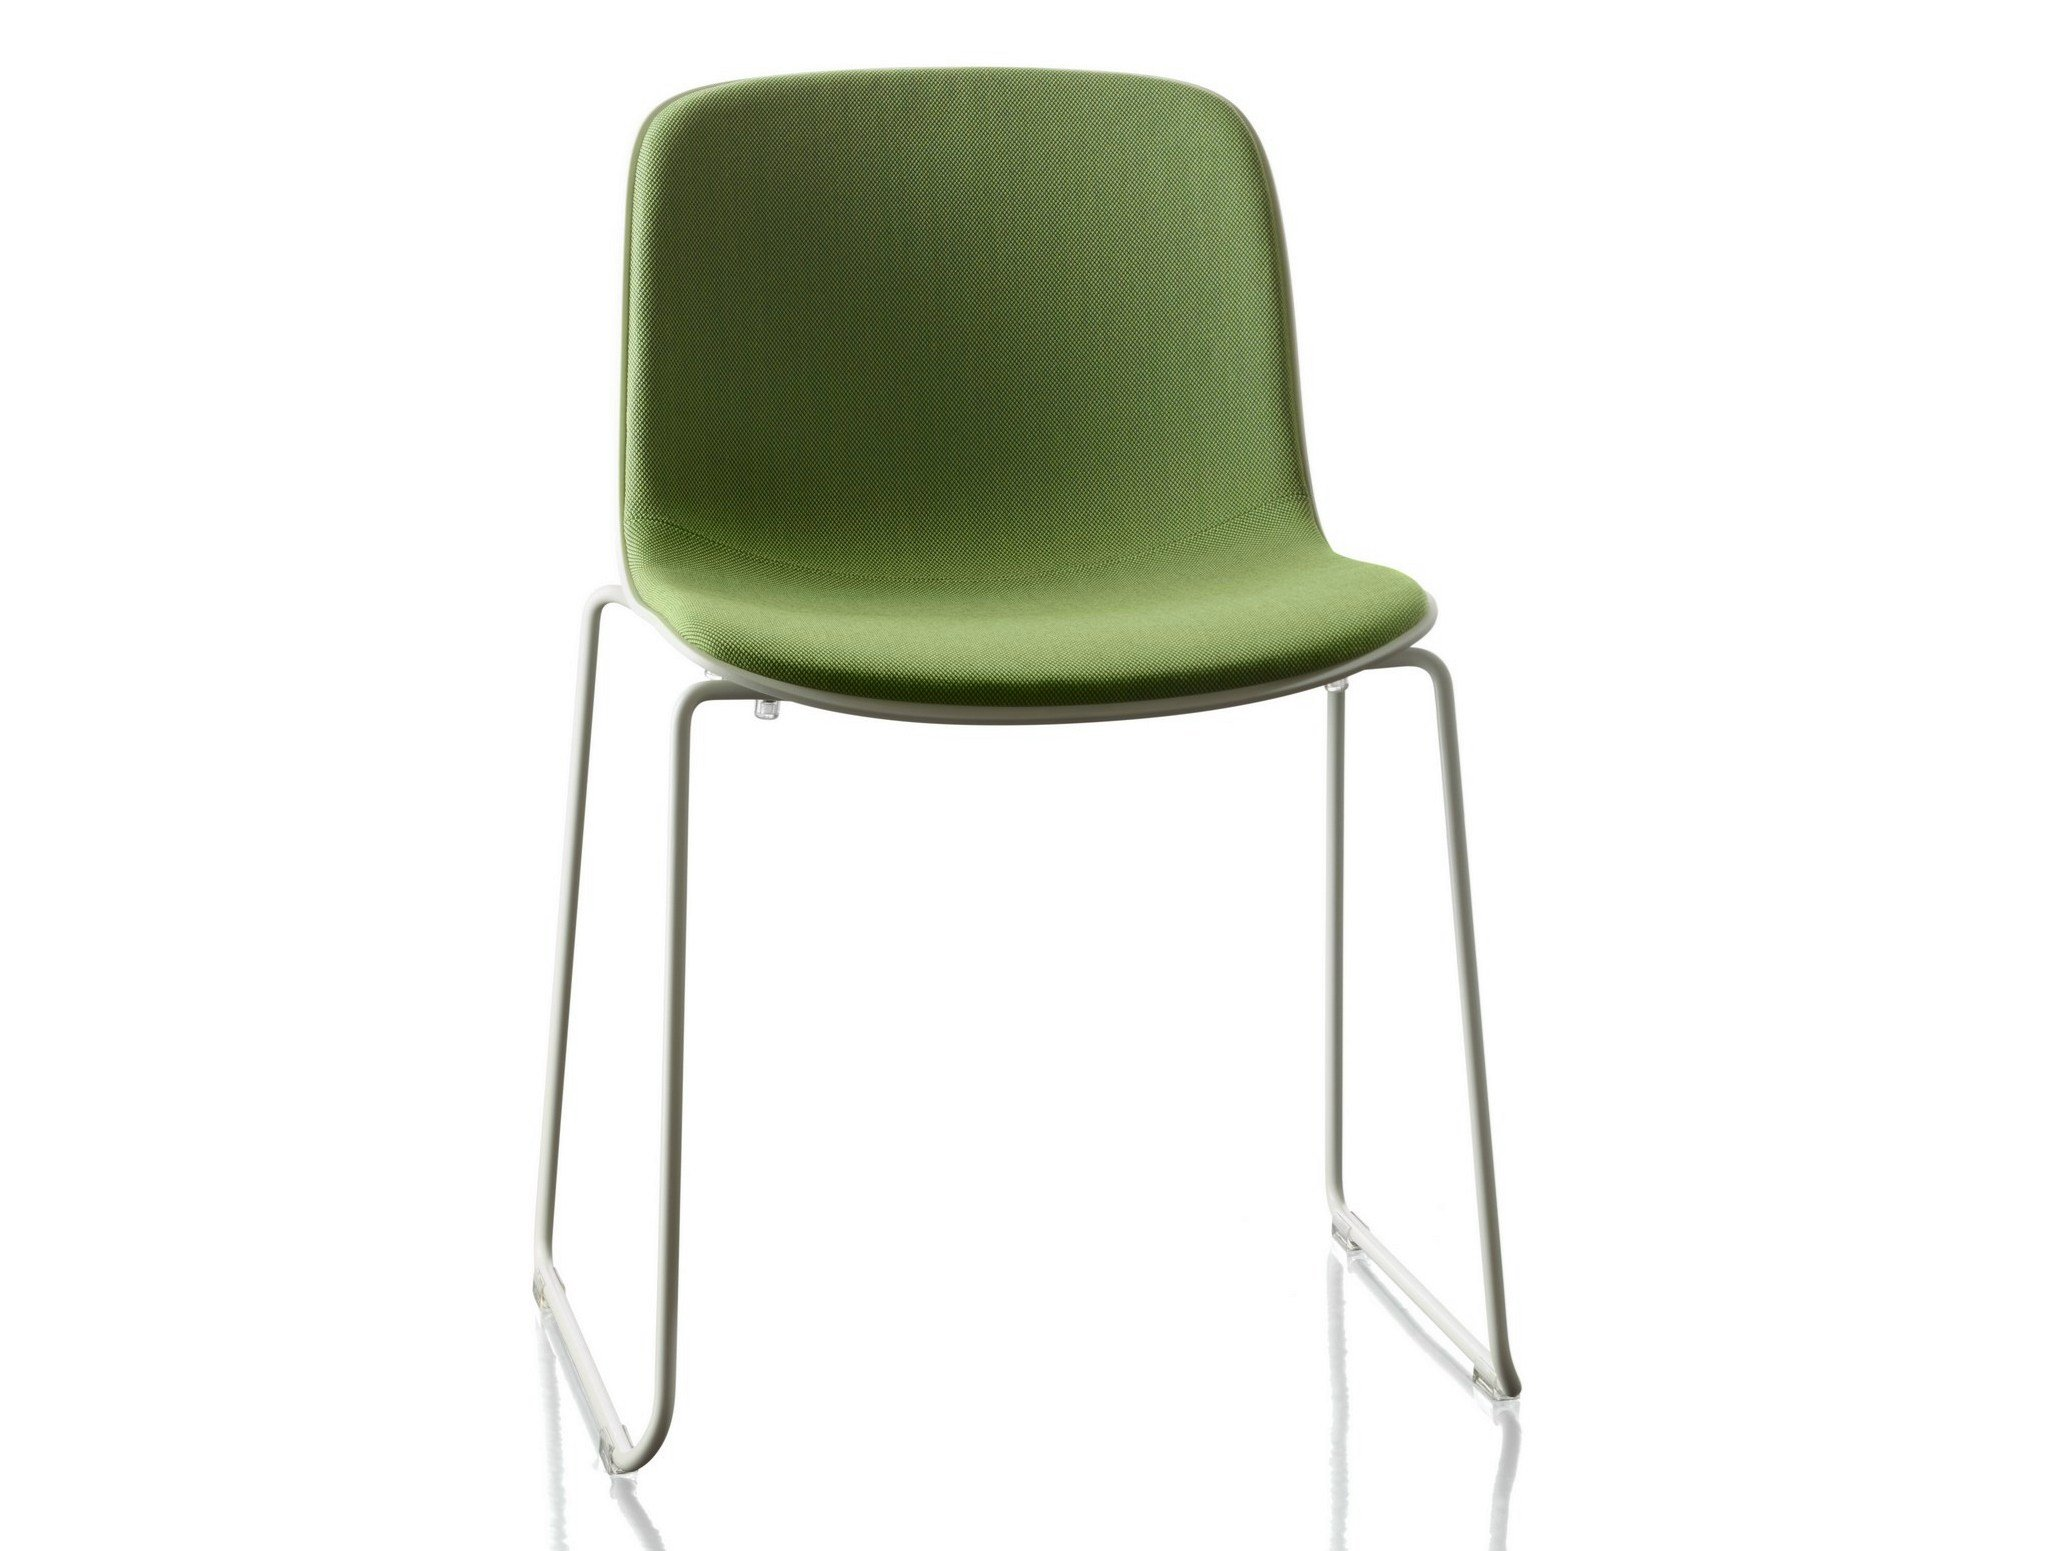 Troy upholstered chair by magis design marcel wanders for Magis chair